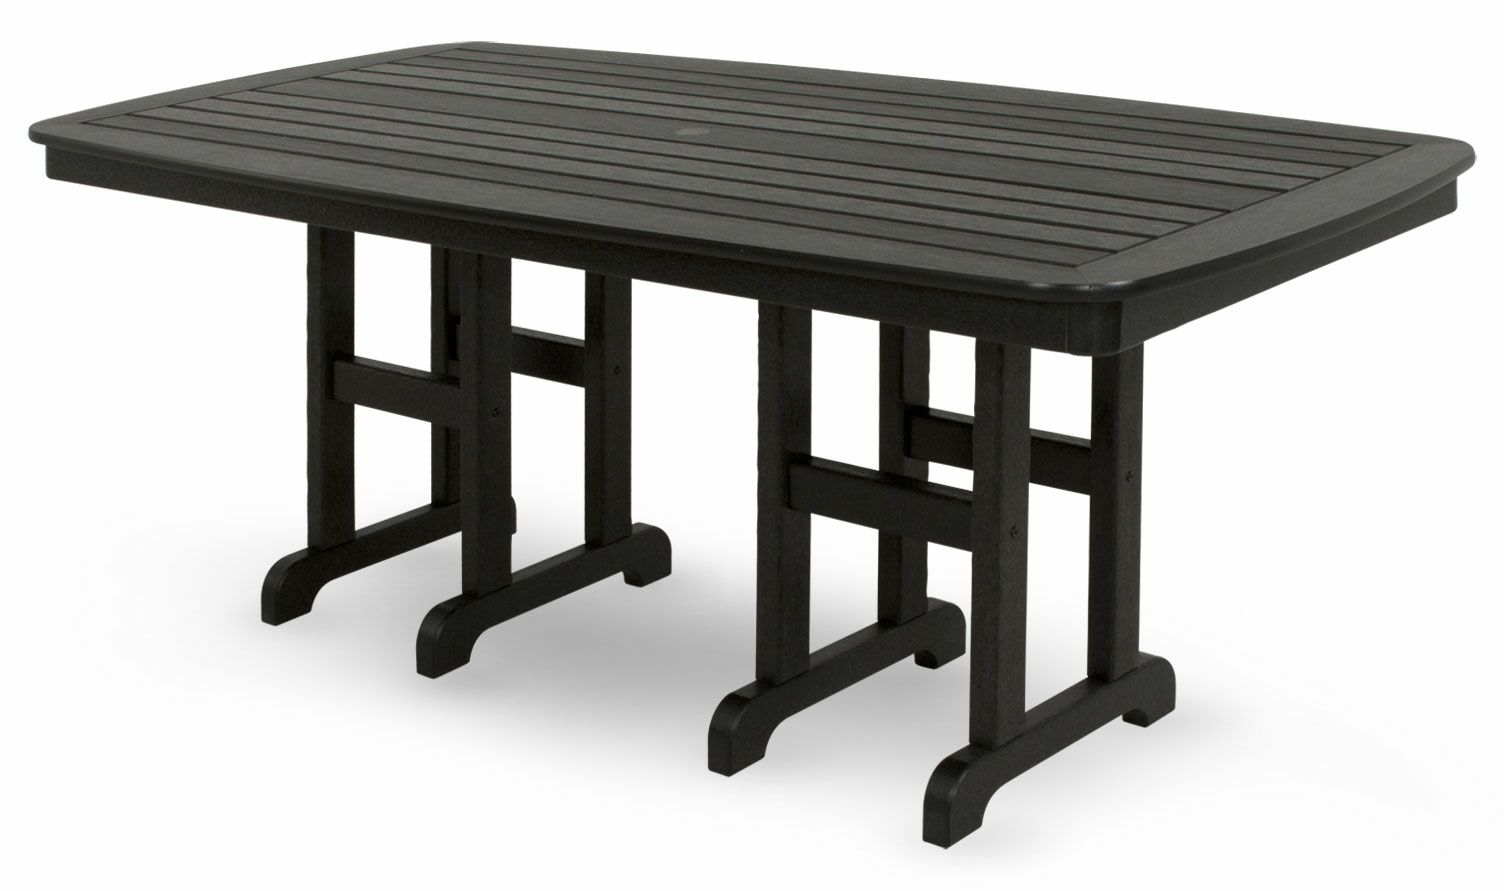 Yacht Club Dining Table Finish: Charcoal Black